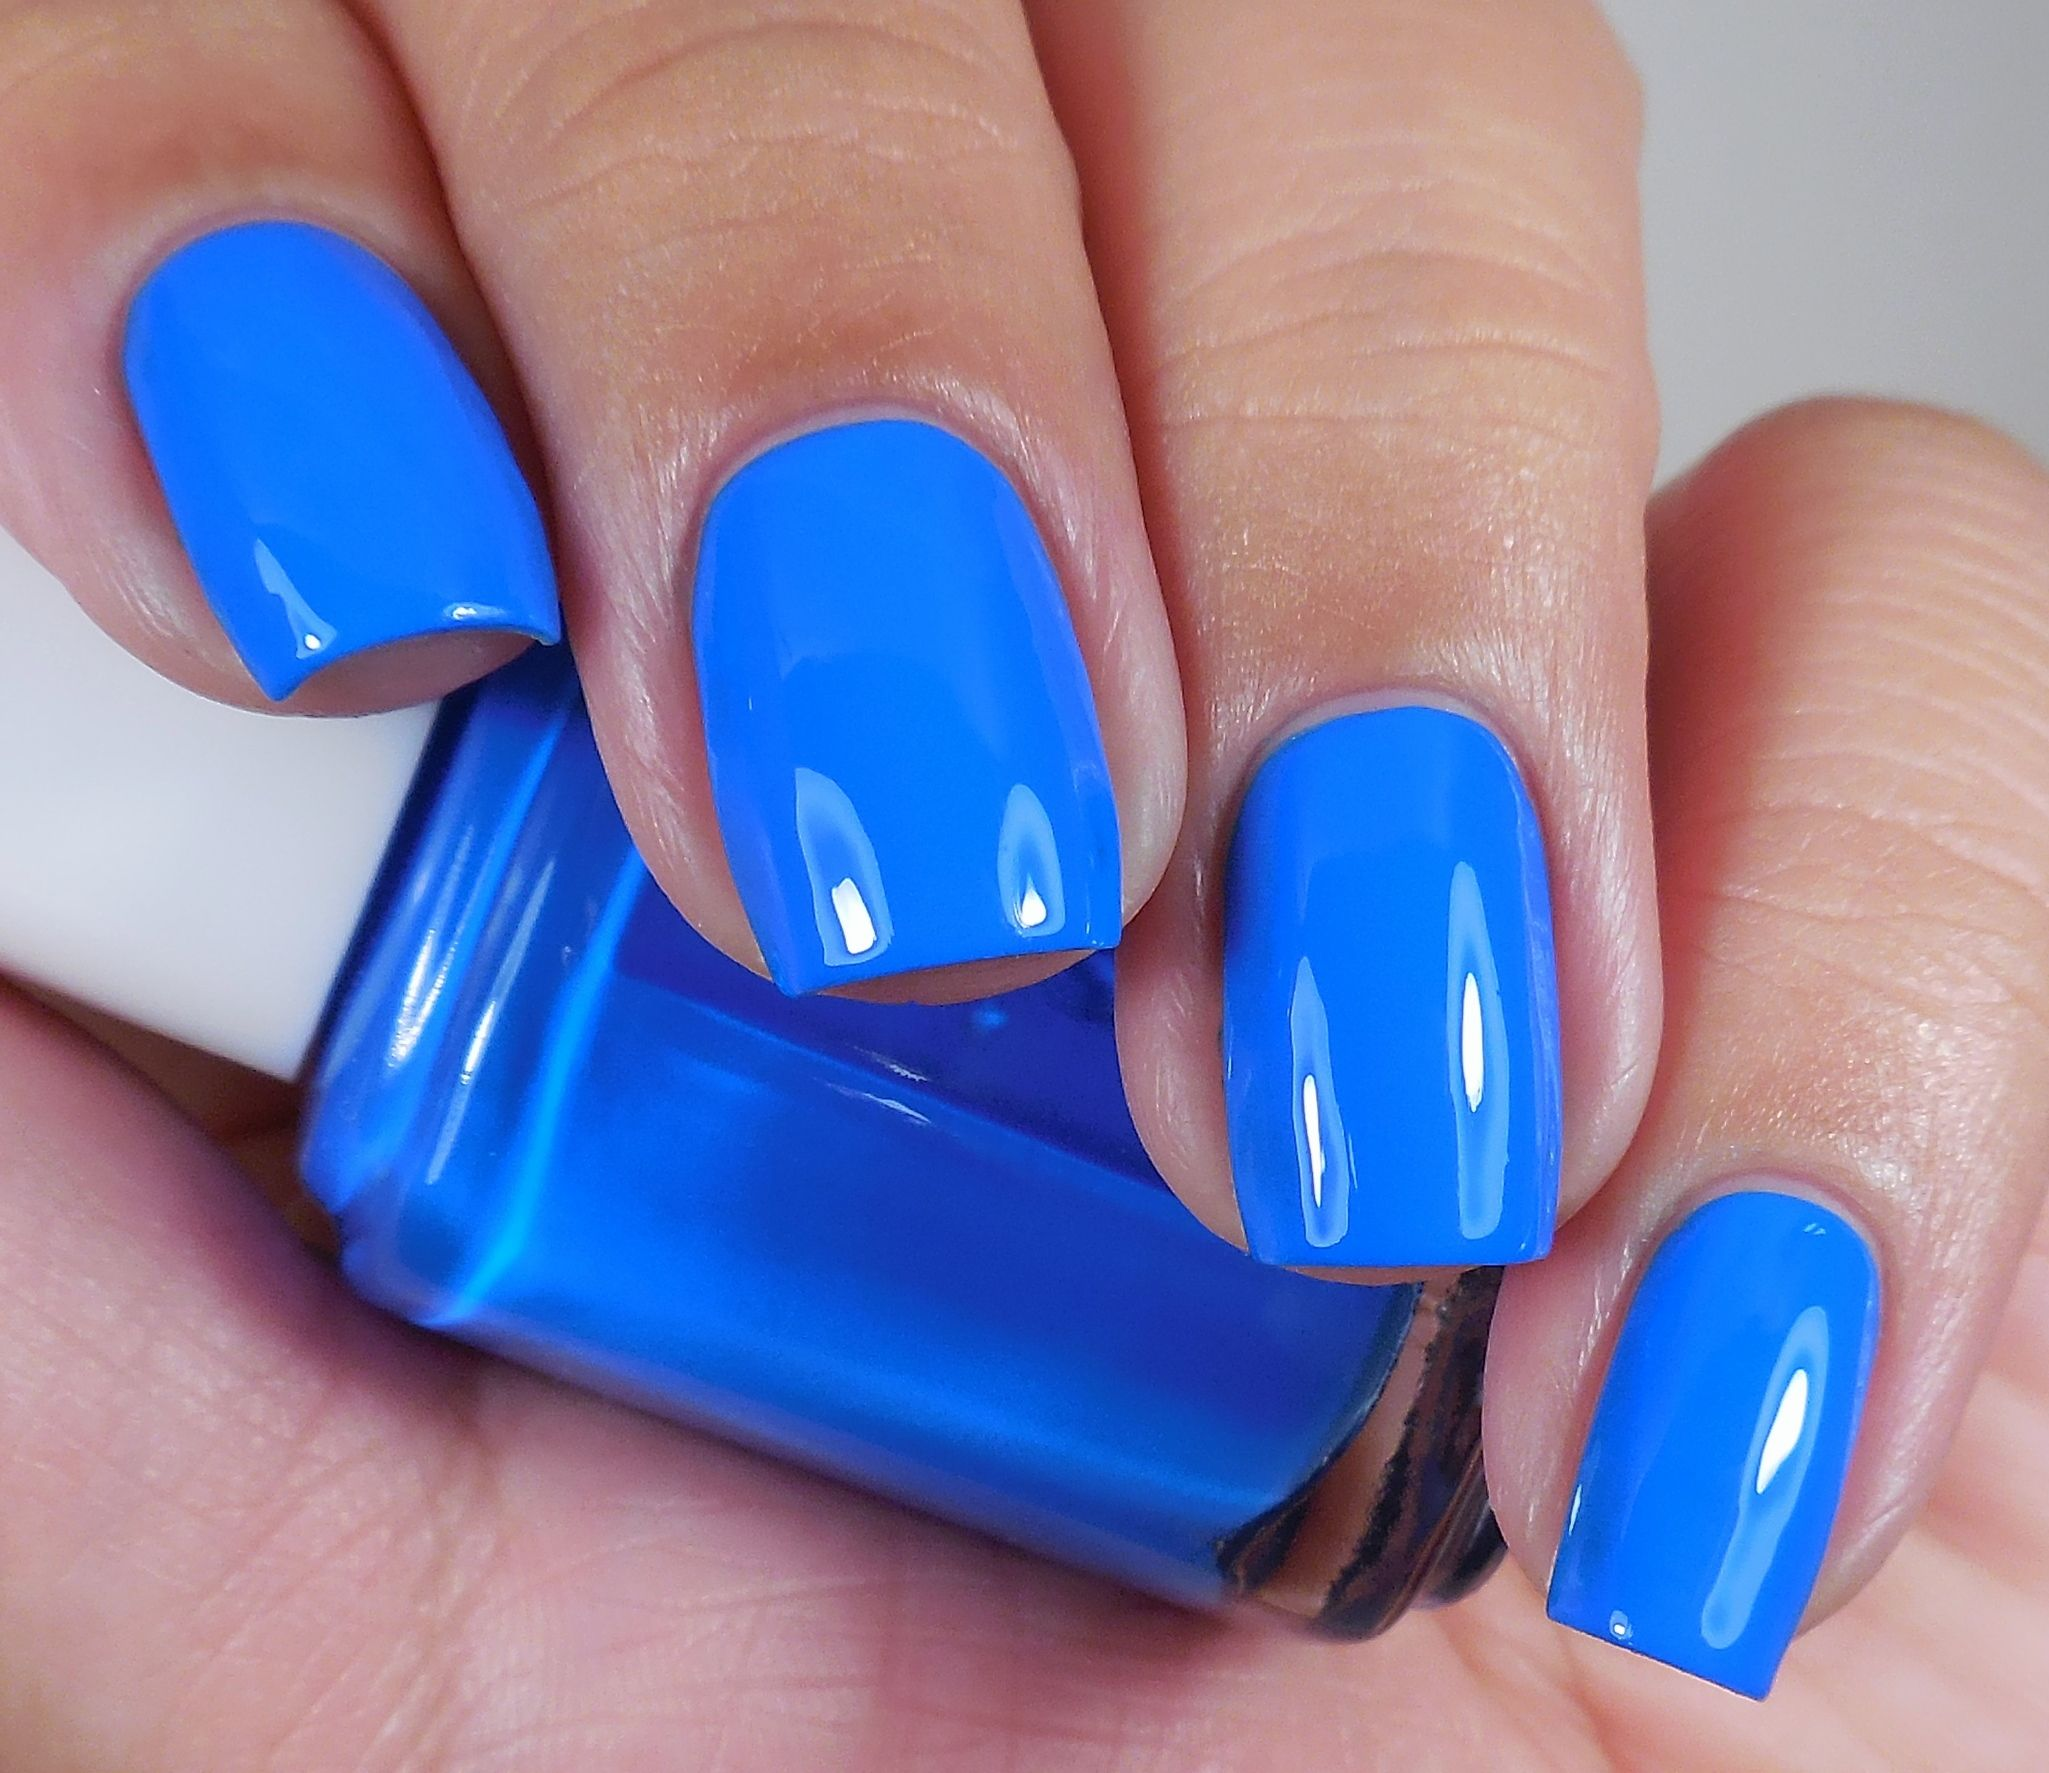 Essie: ☆ Make Some Noise ☆ ... a bright blue creme nail polish ...